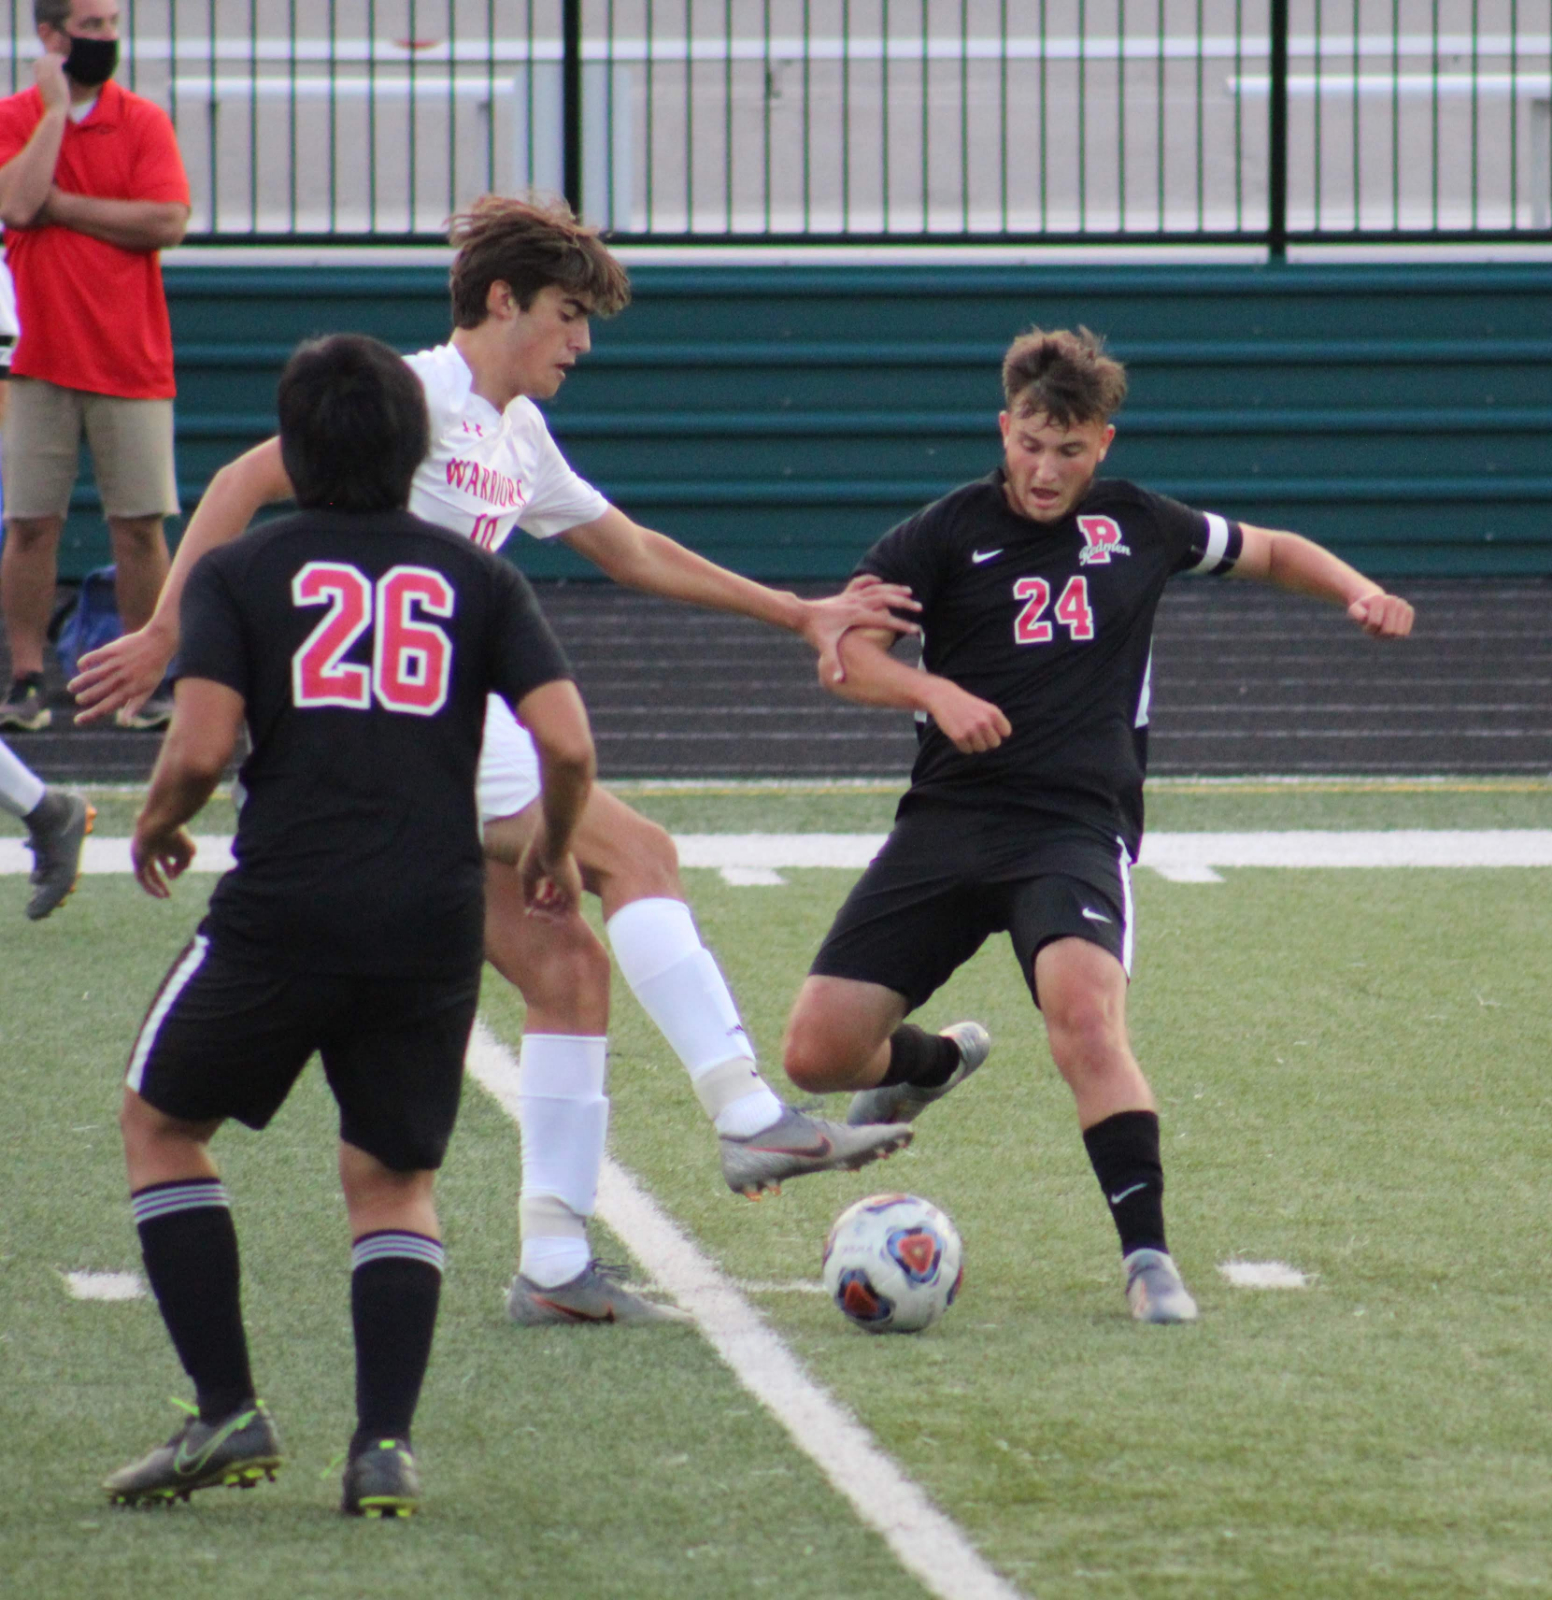 Action Pics of Boys Soccer vs. Fairview